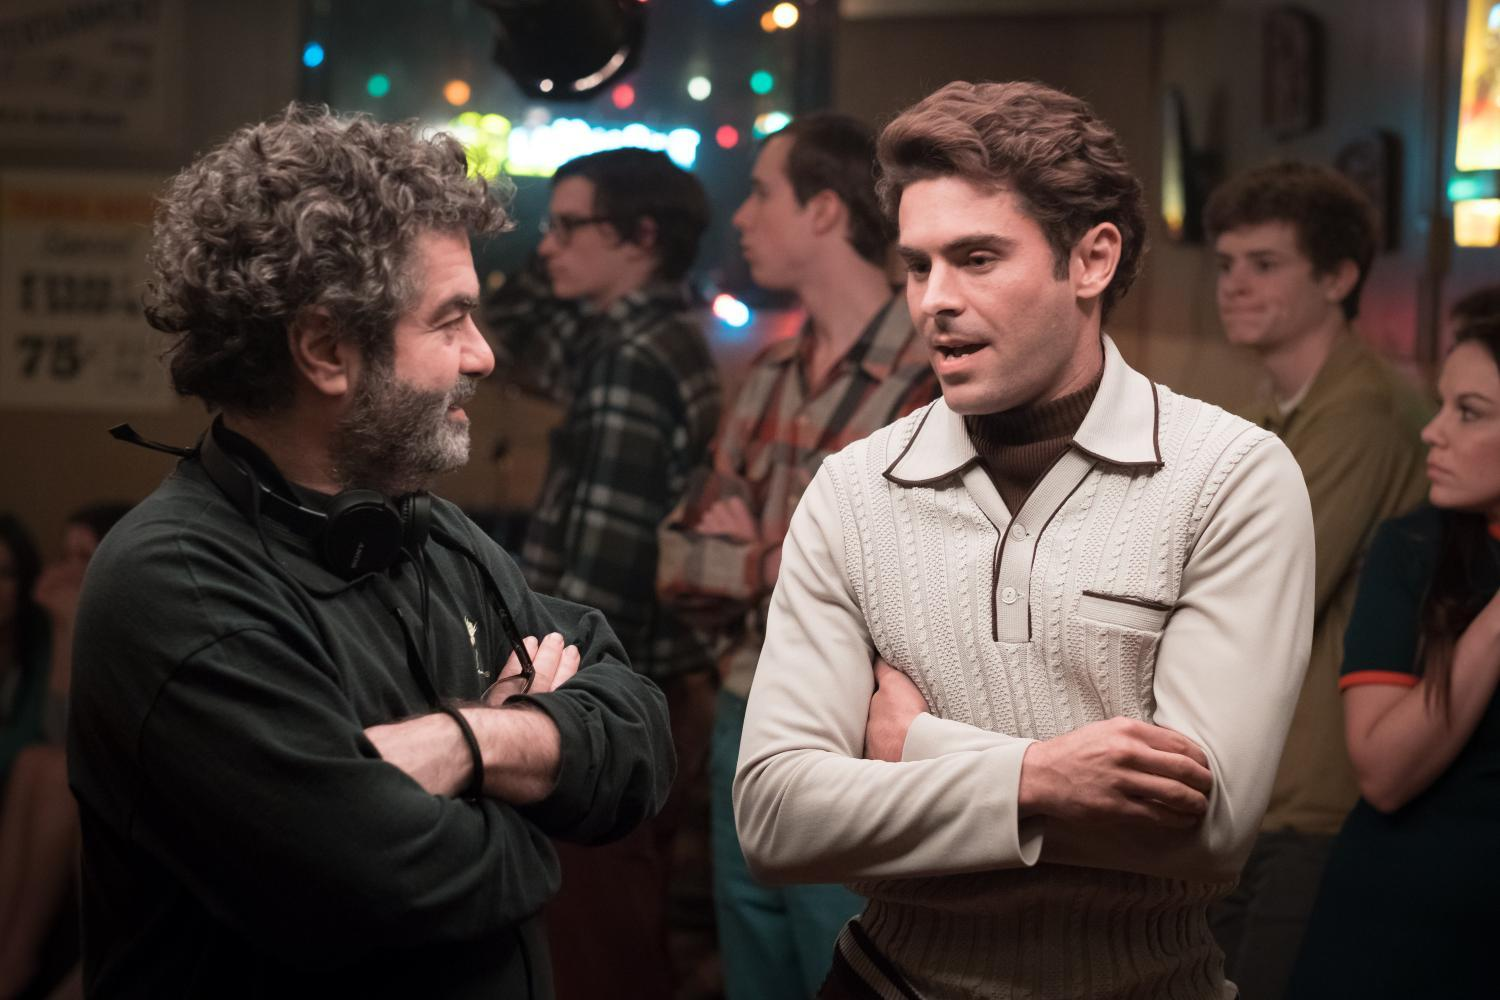 Director Joe Berlinger and Zac Efron